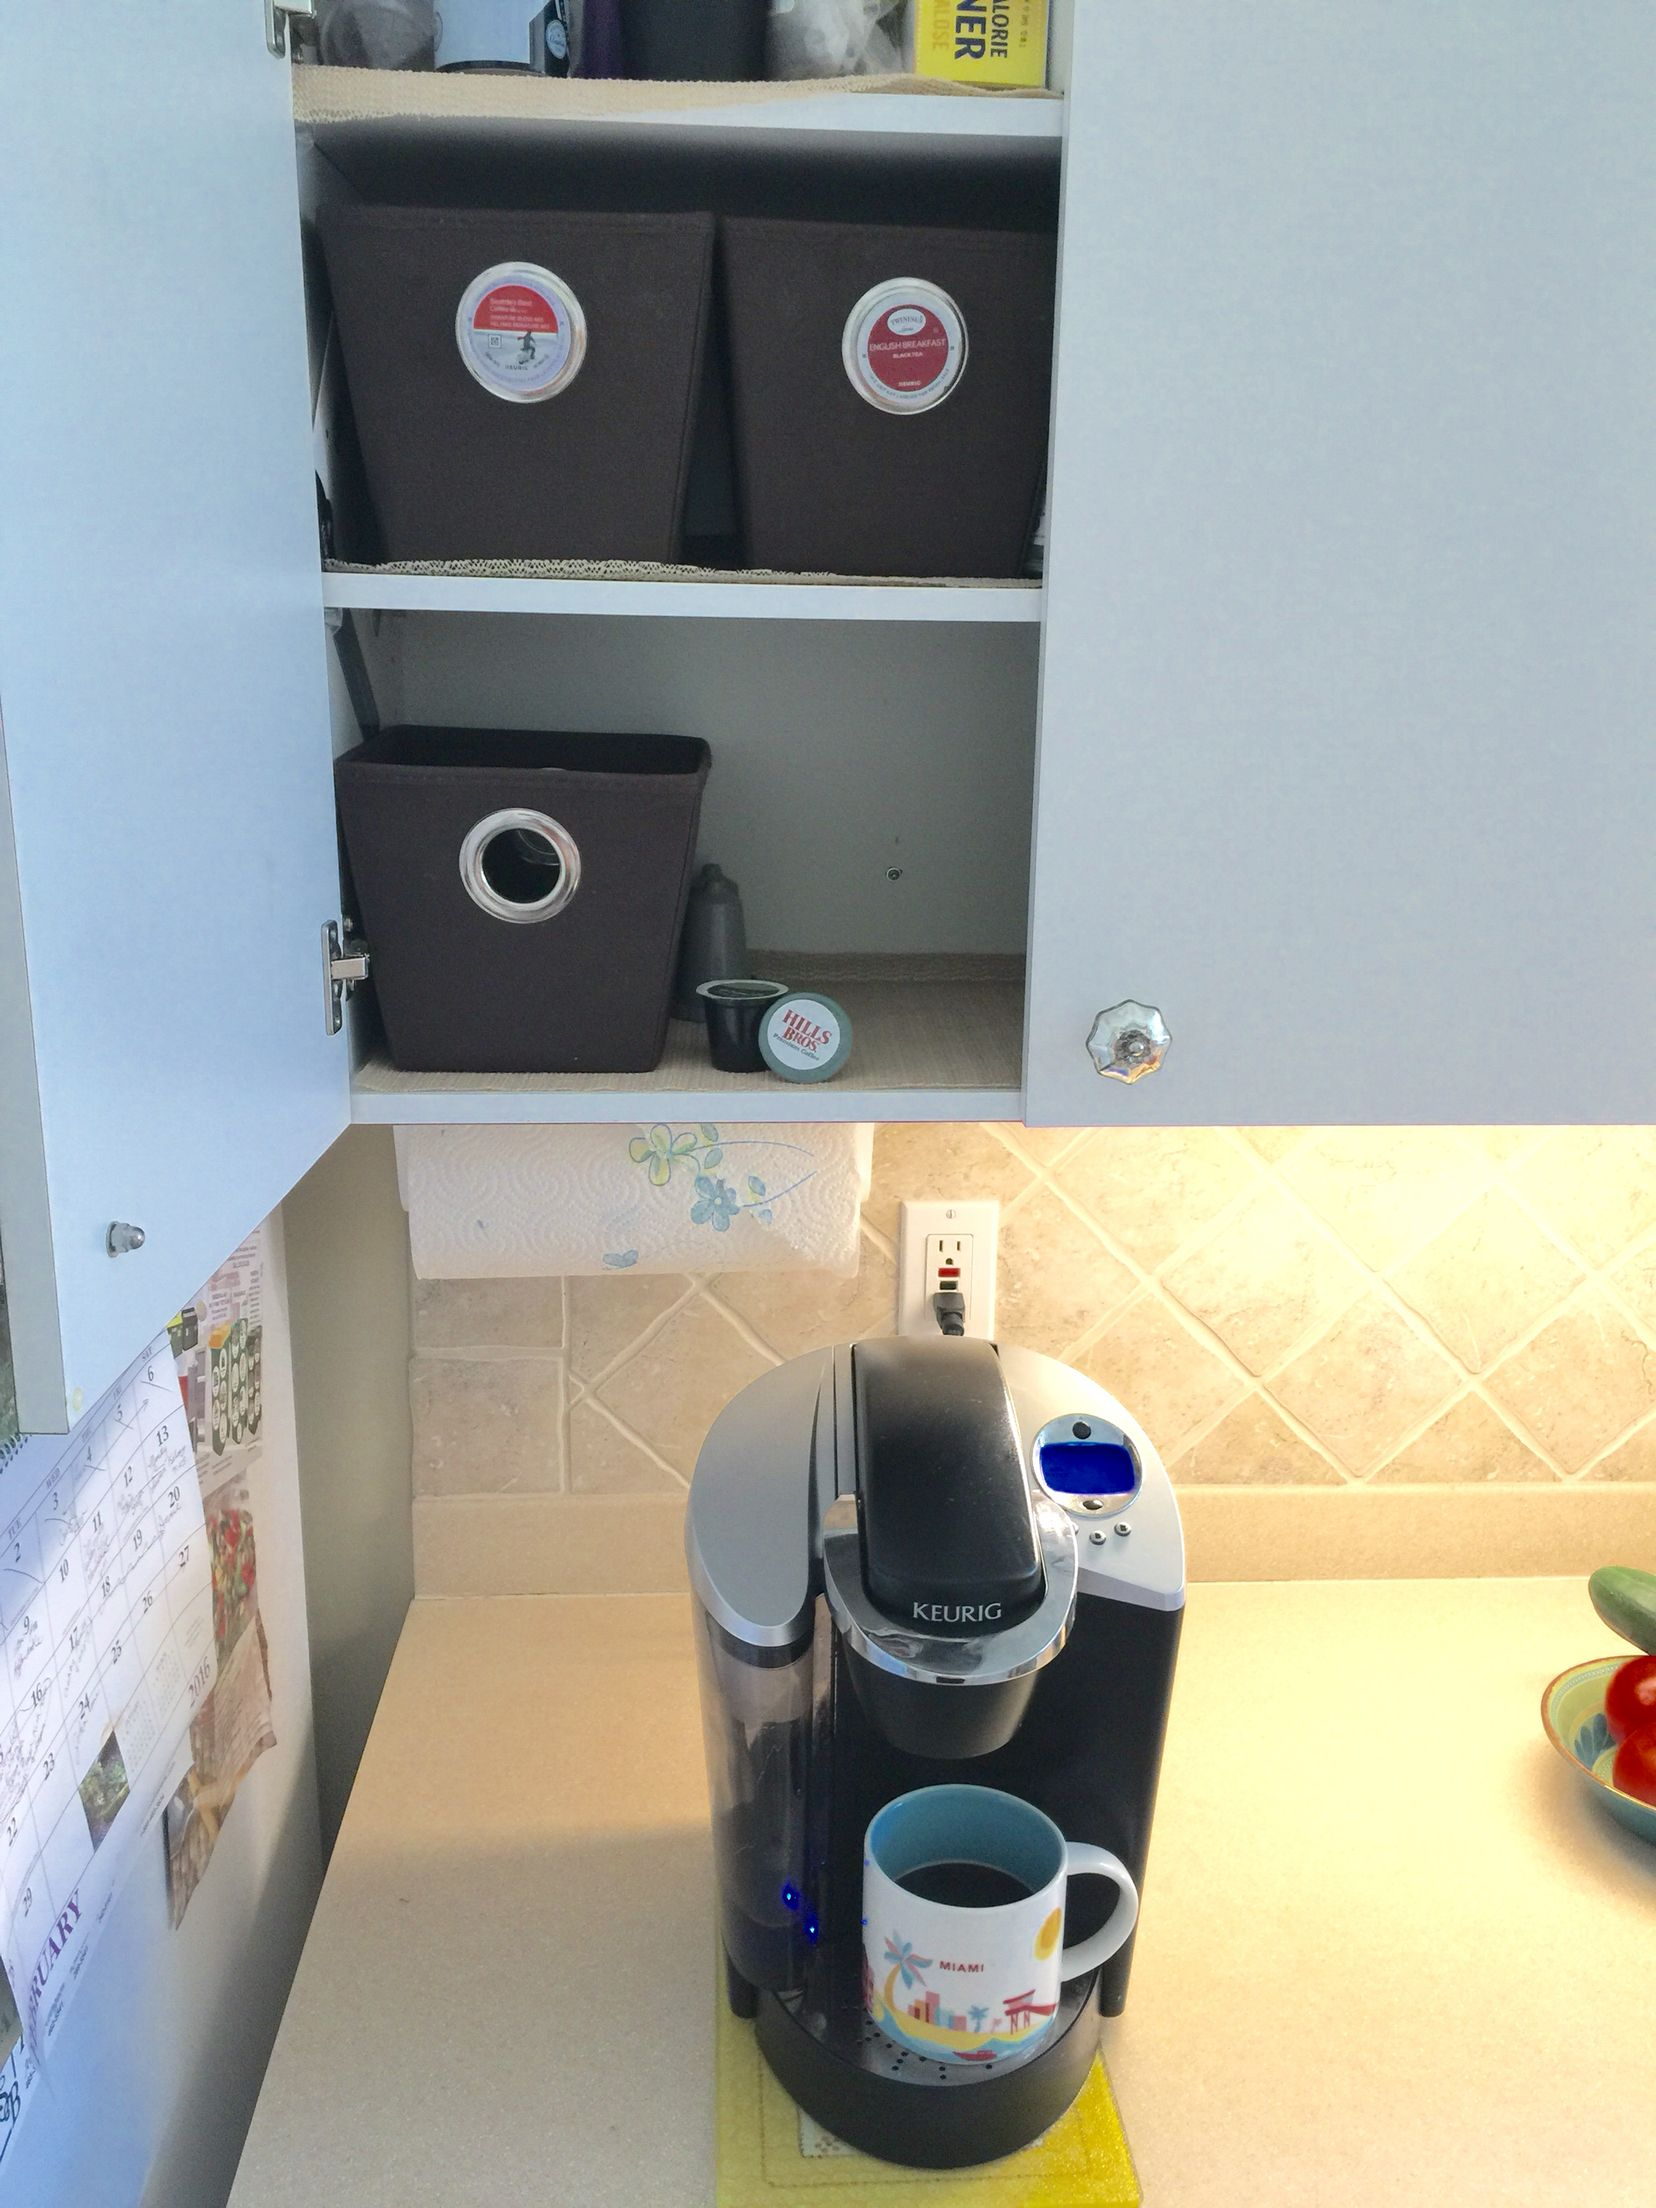 keurig and to bath dorm img beyond bed college room adjusting reveal the fashion newcomer